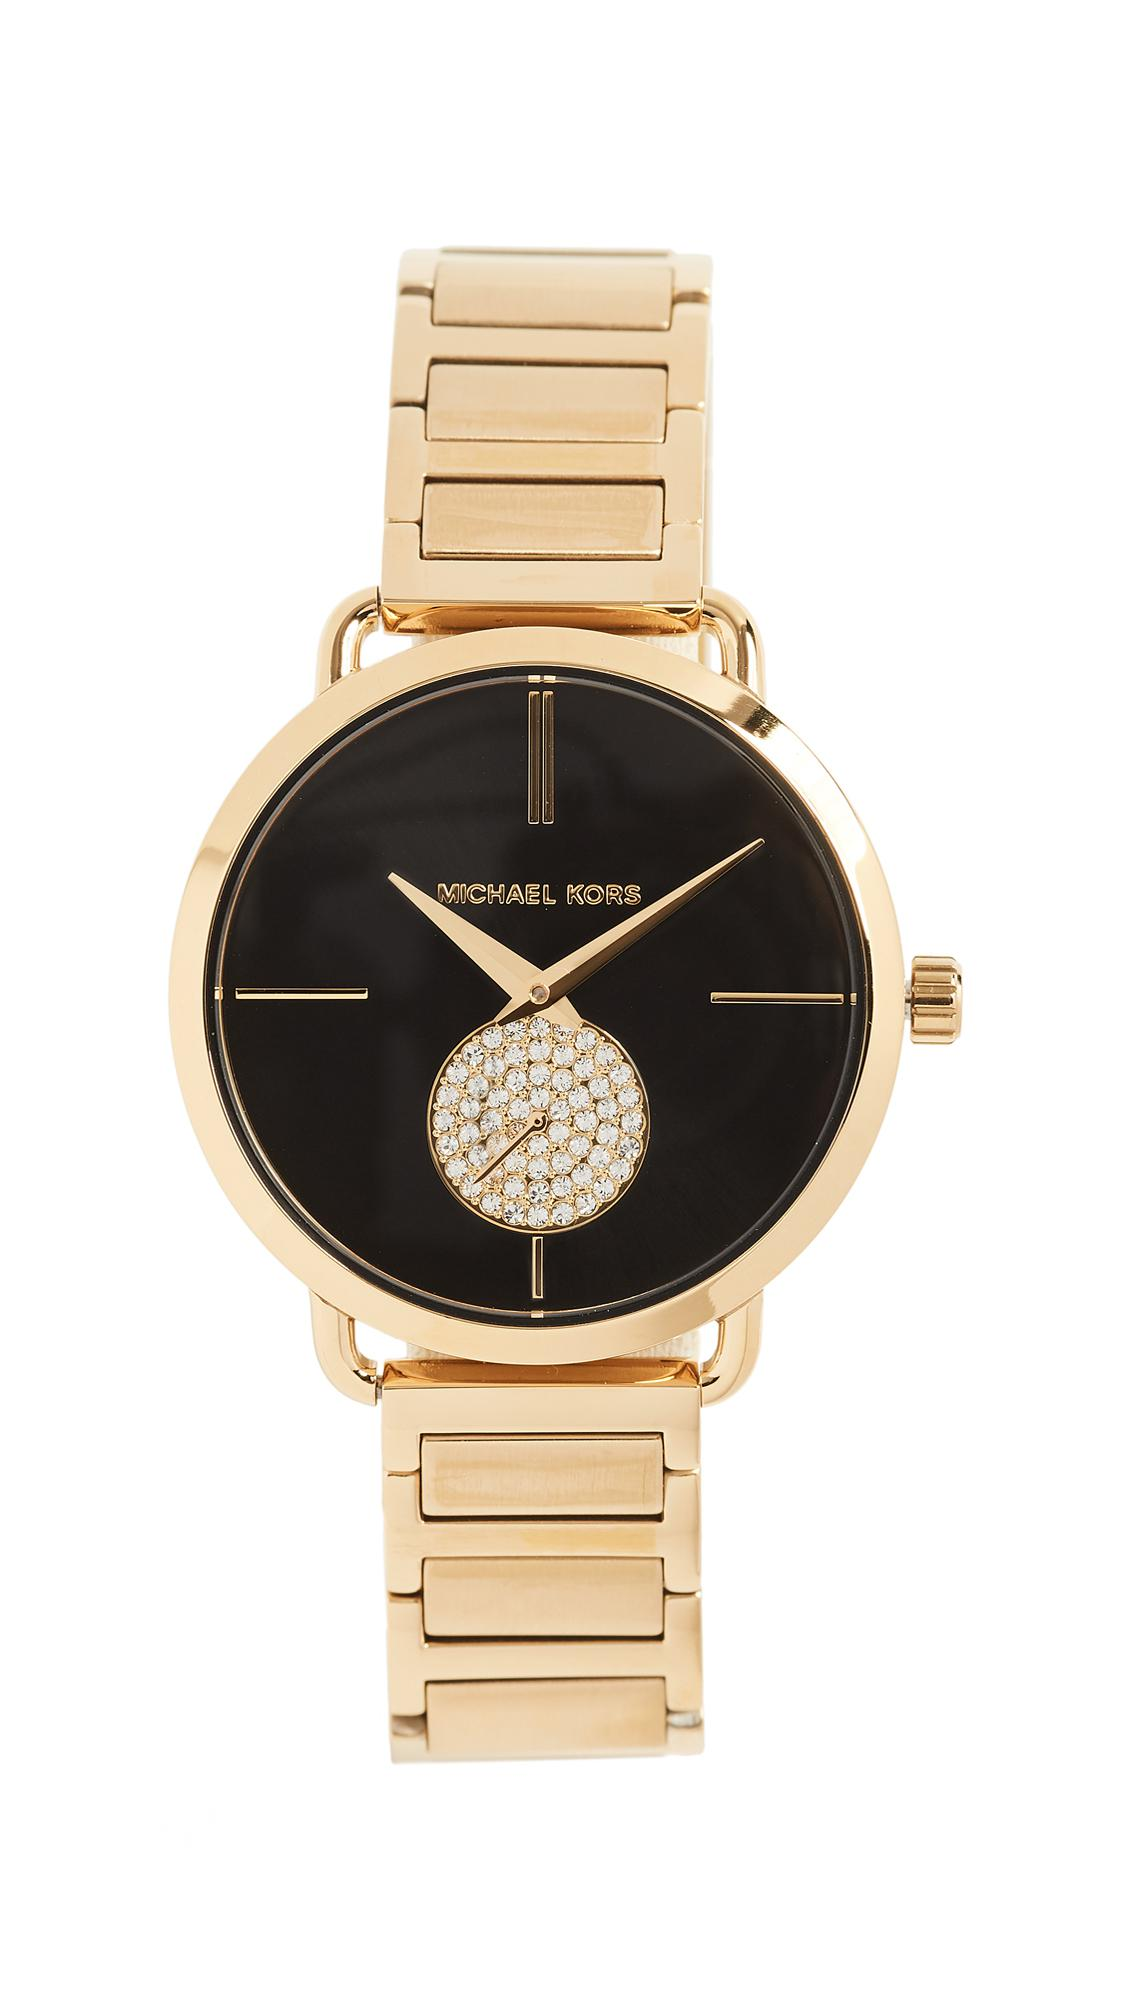 Lyst - Michael Kors Collection Icon Portia Watch e3b3b017308e